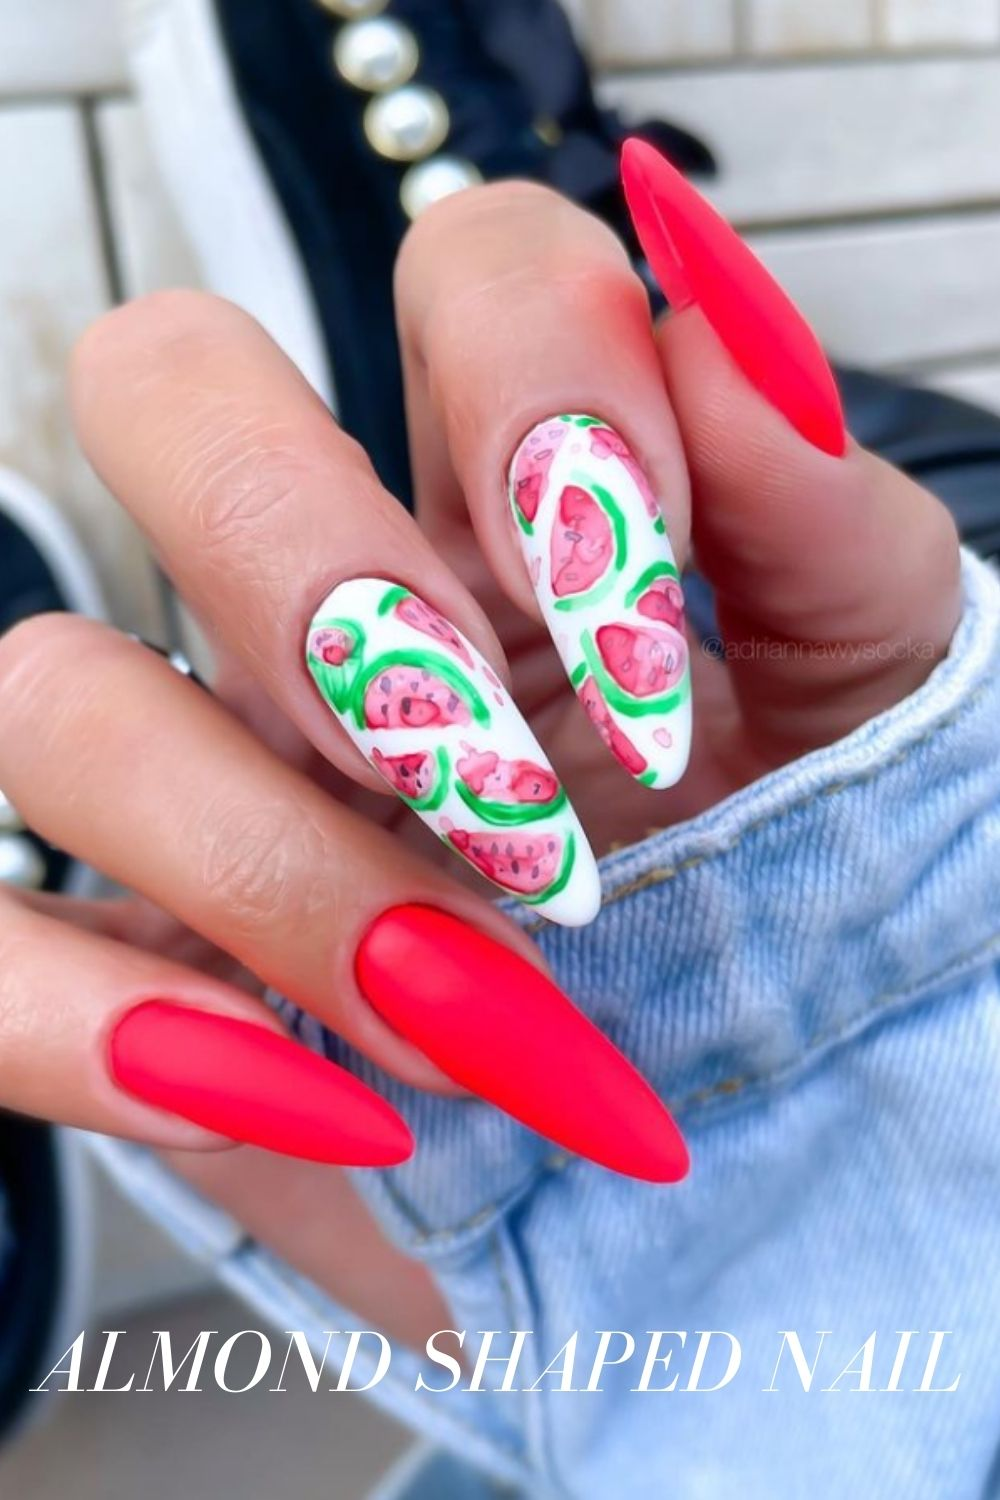 Nail design with watermelon